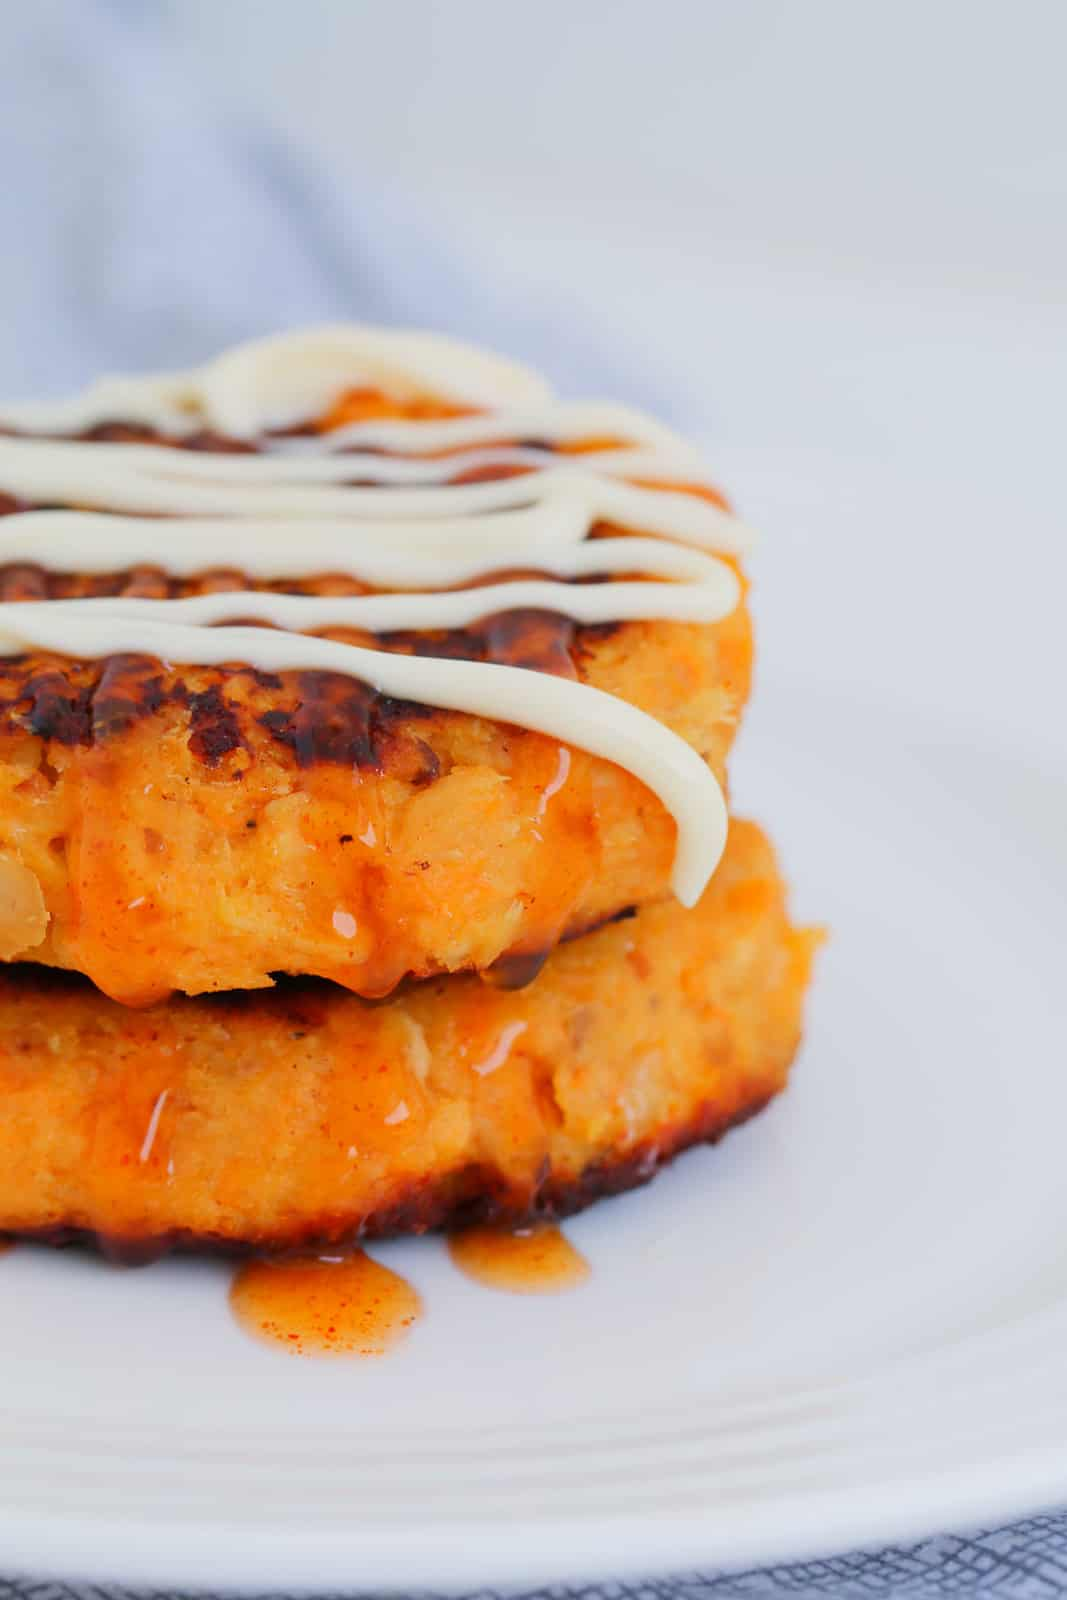 Two sweet potato and tuna patties, drizzled with sweet chilli sauce and Kewpie mayonnaise.